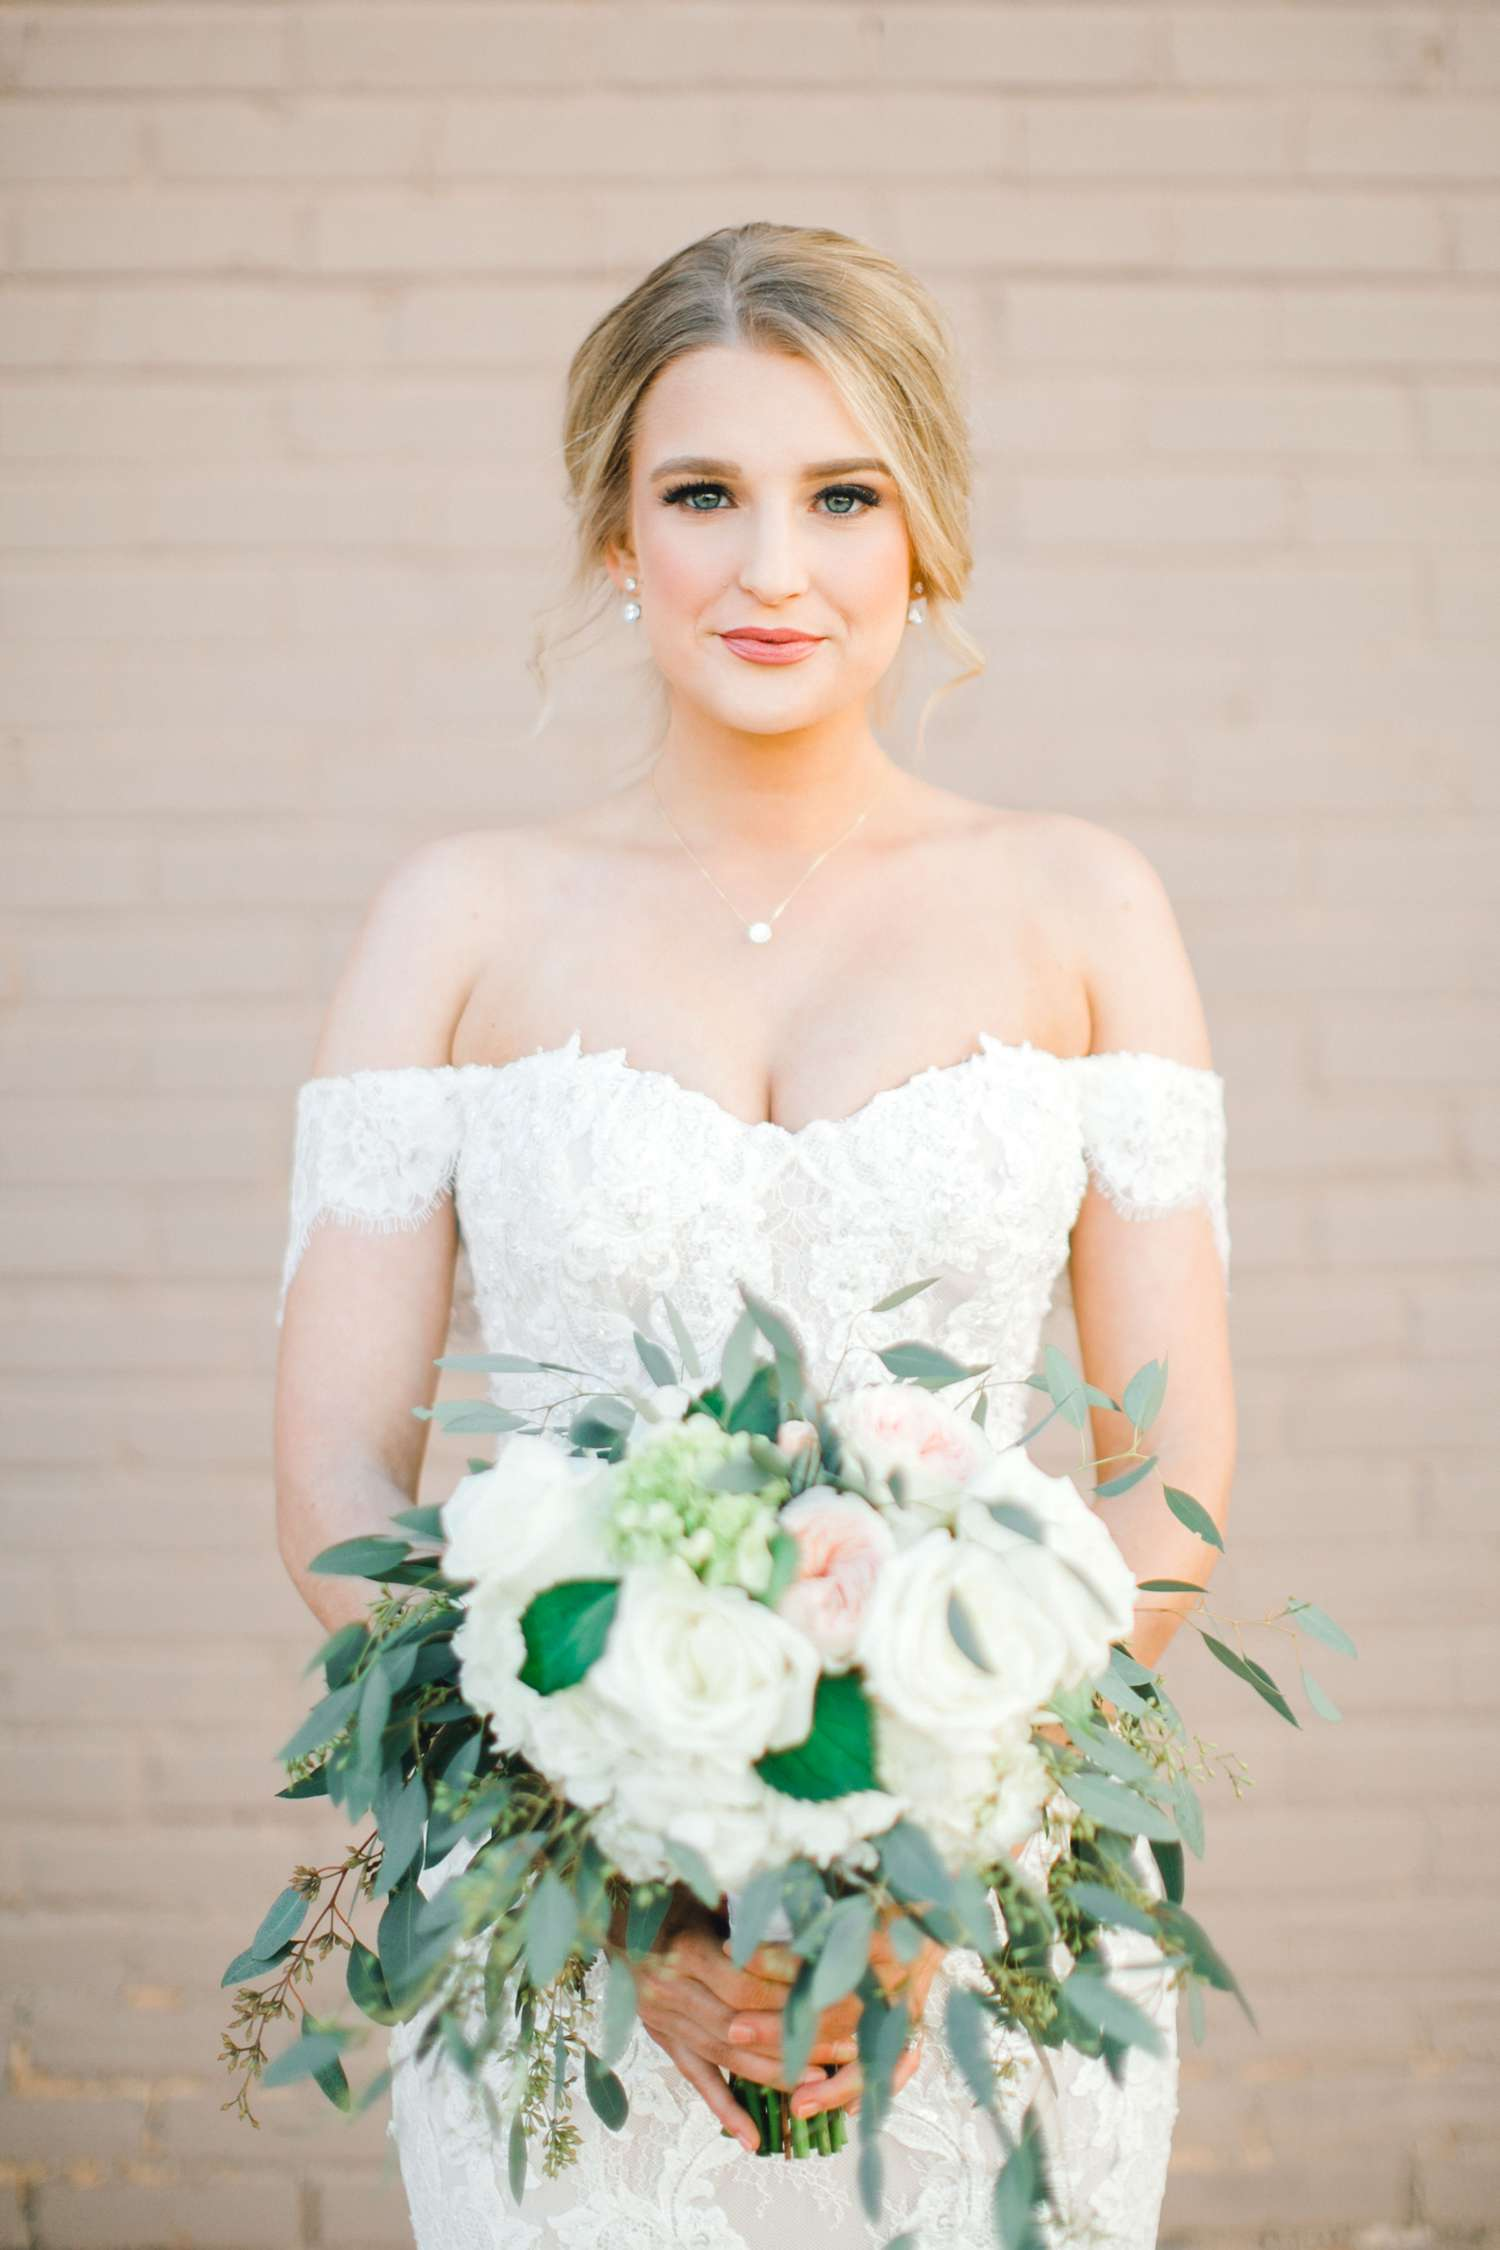 MORGAN+BOONE+BRIDALS+WEDDING+PHOTOGRAPHER_0011.jpg